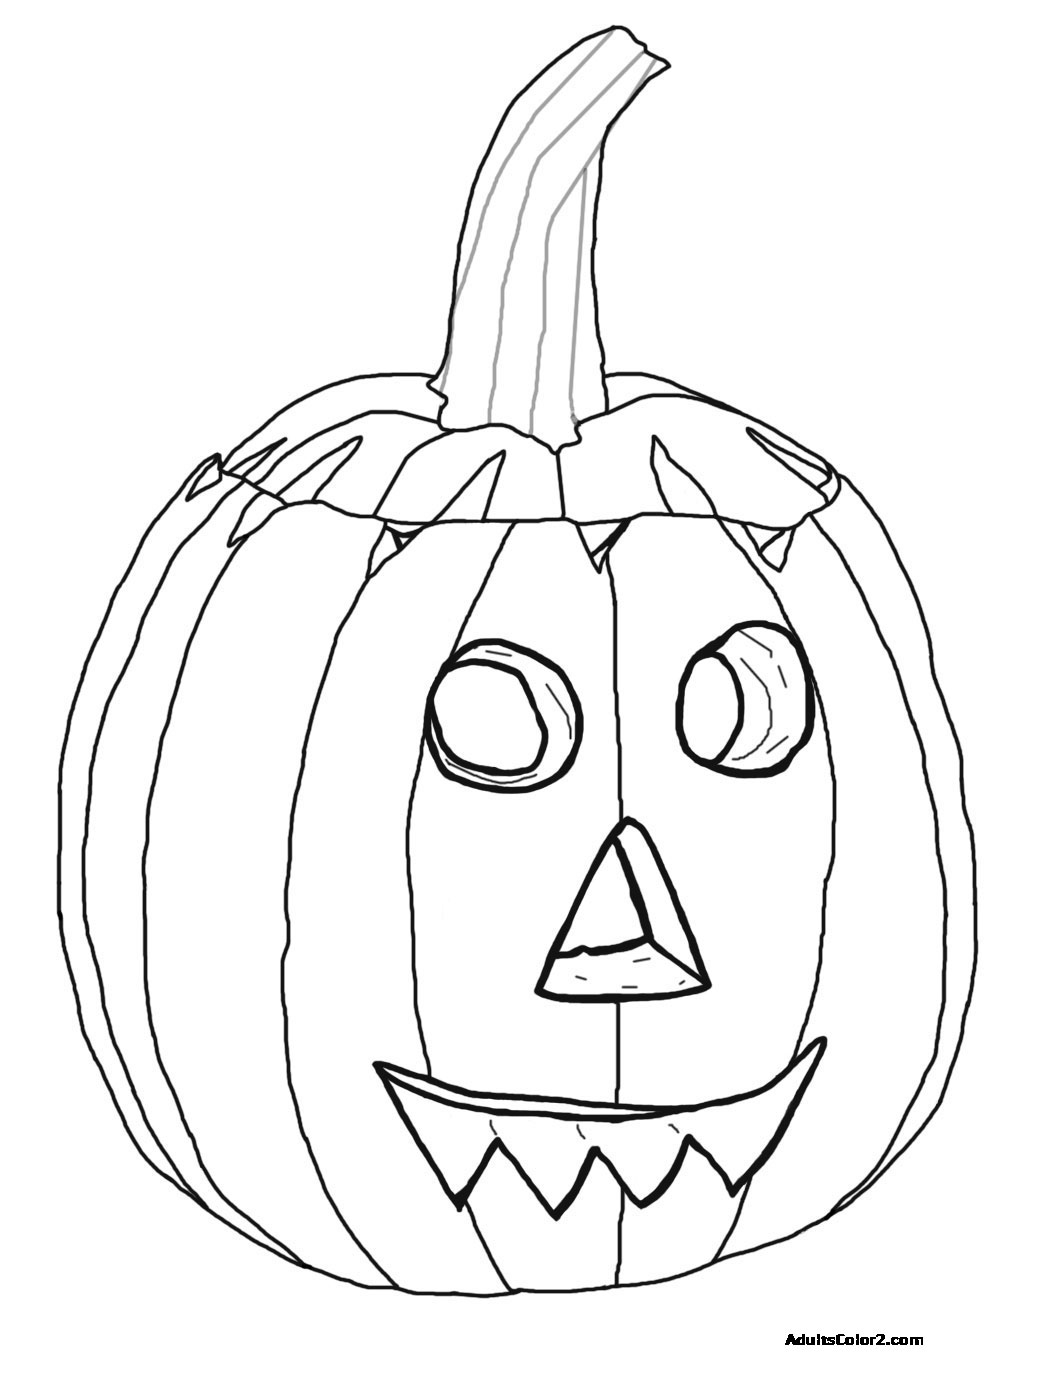 🎨 🎨 Jack Lantern Scary Halloween Free Printable Coloring Pages ... | 1375x1063